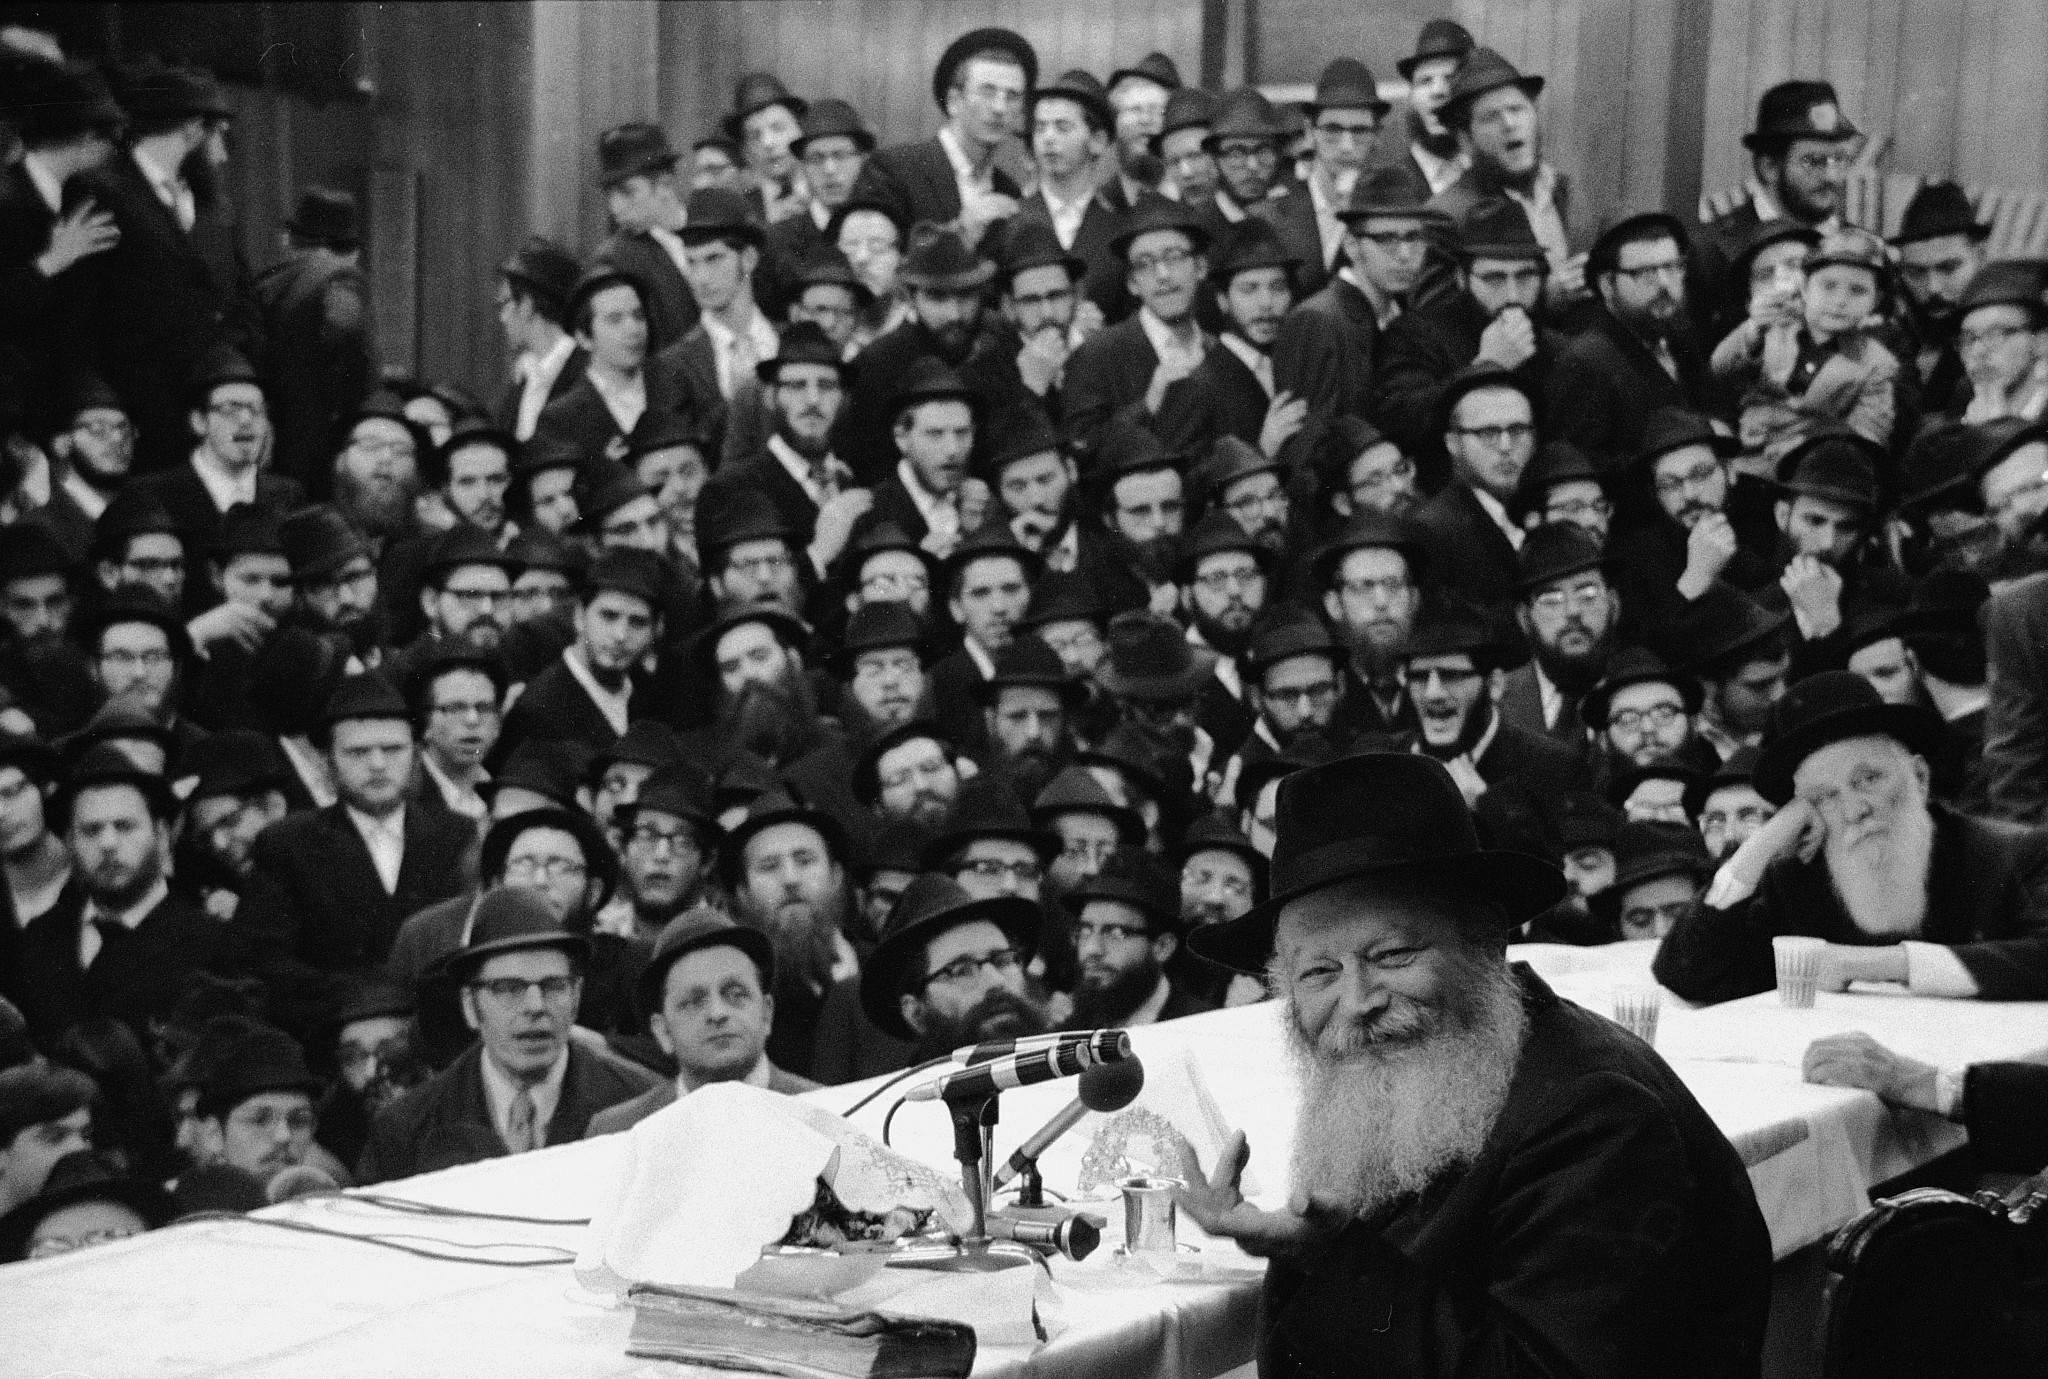 The Lubavitcher Rebbe died 25 years ago, but his impact lives on across all Jewish denominations